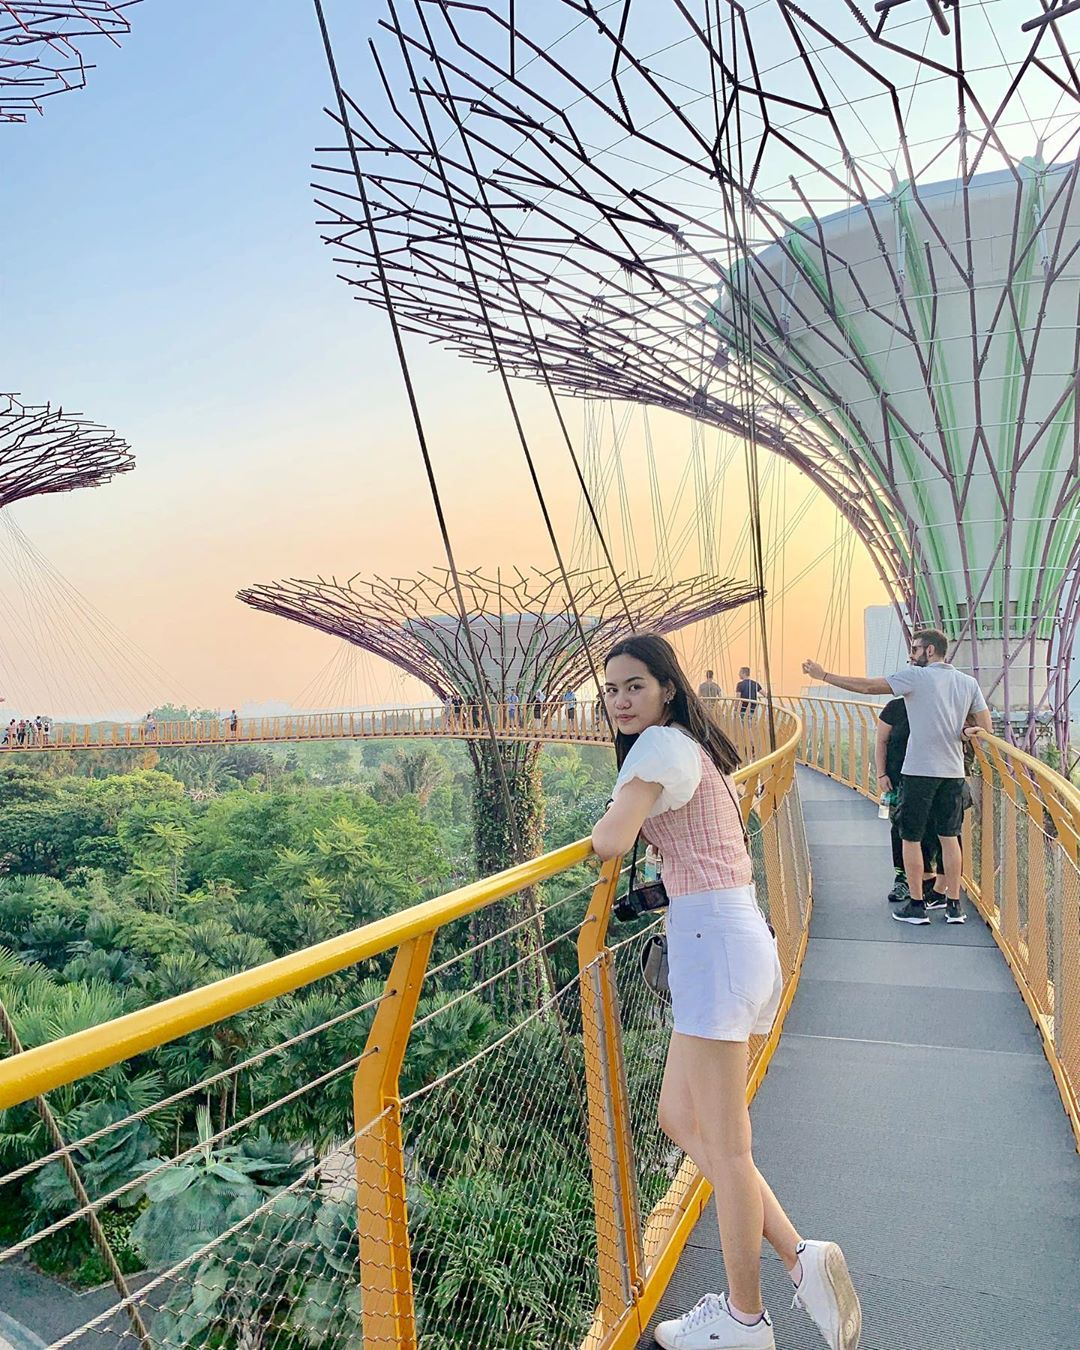 Inspirasi Wisata Traveling Singapore Garden by the Bay OCBC Skyway